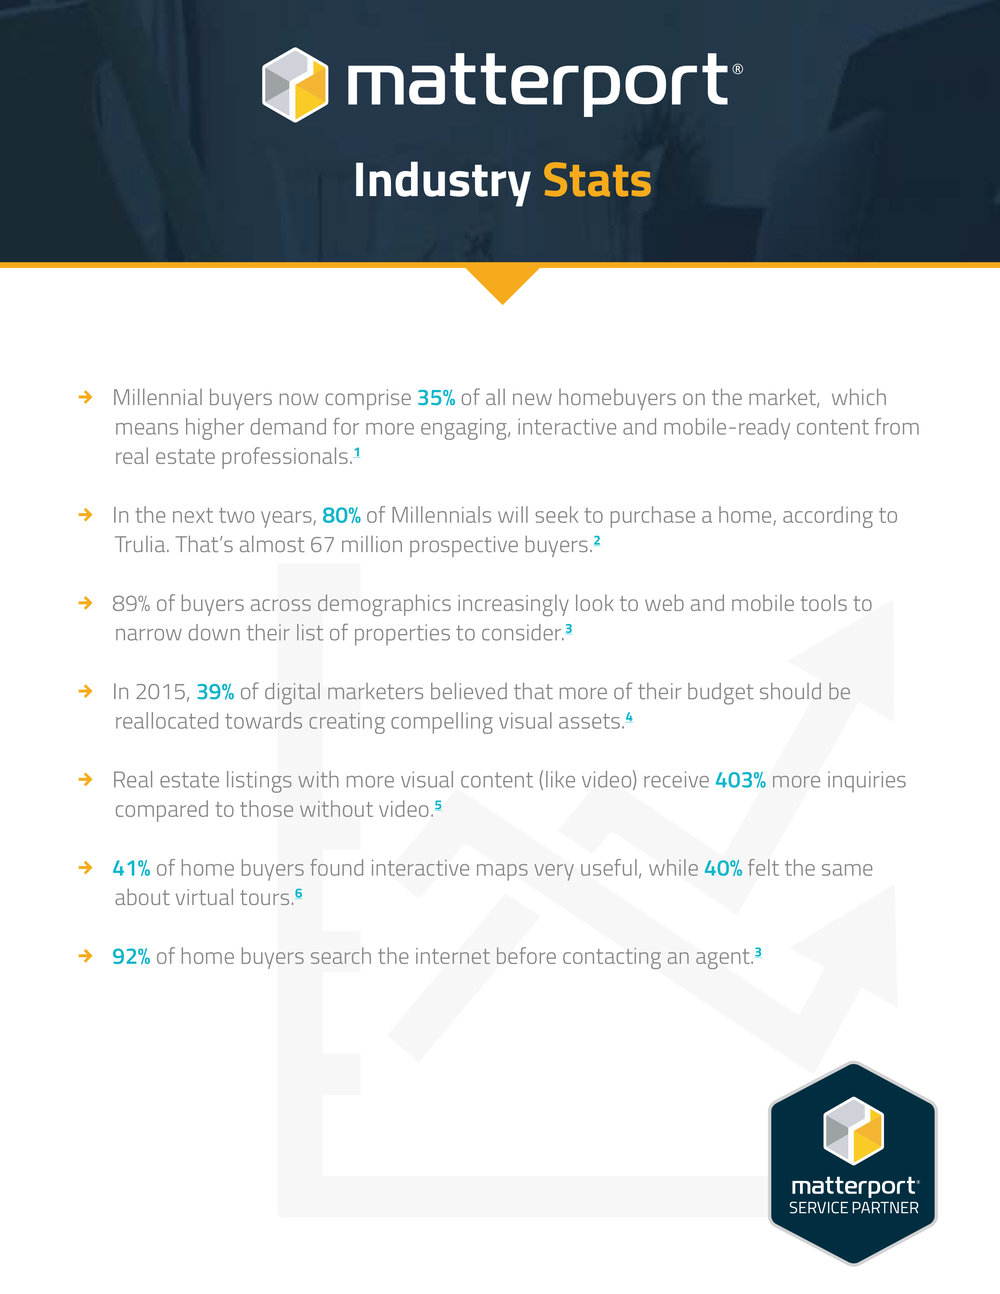 Matterport-Statistics---Real-Estate-1.jpg